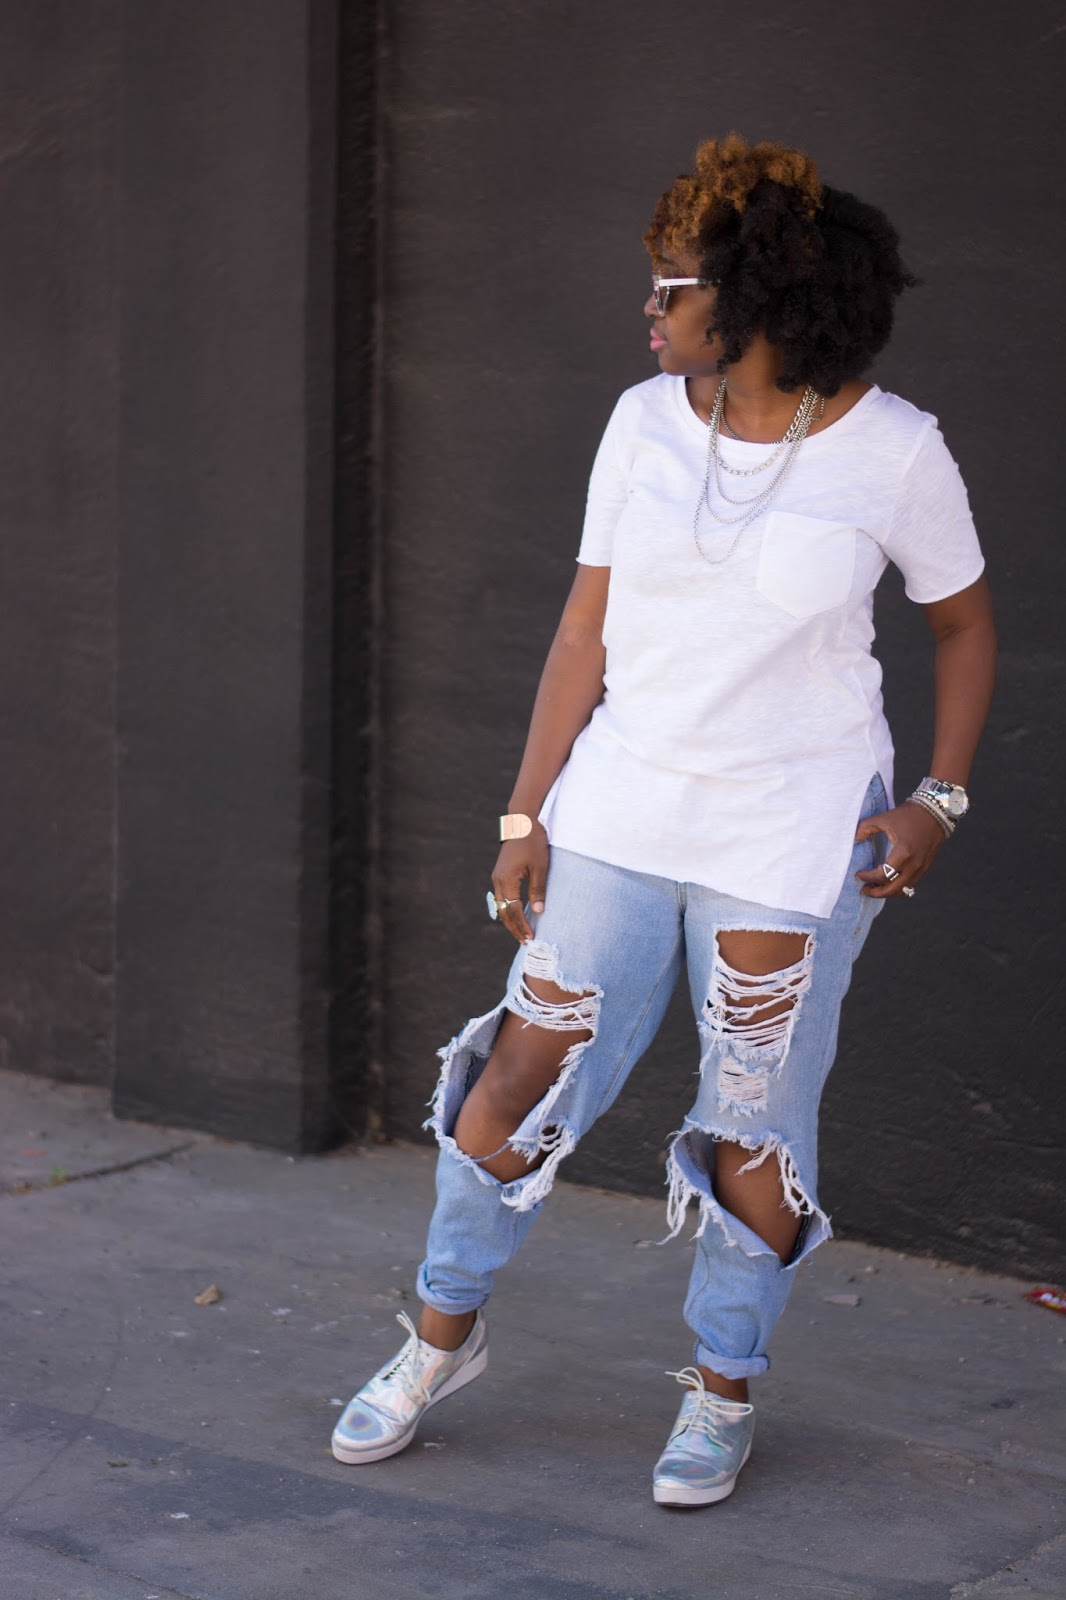 Atlanta Style Blogger, Style blogger, Atlanta stylist, black blogger, black girls rock, Atlanta street style, distressed jeans, white t, monki, iridescent platforms, silver accessories, natural hair fashion, Atlanta fashion, black and killing it, Black style blogger, brown girls, Atlanta fashion, curvy girls, plus size fashion, what to wear on Saturday, Friday fashion